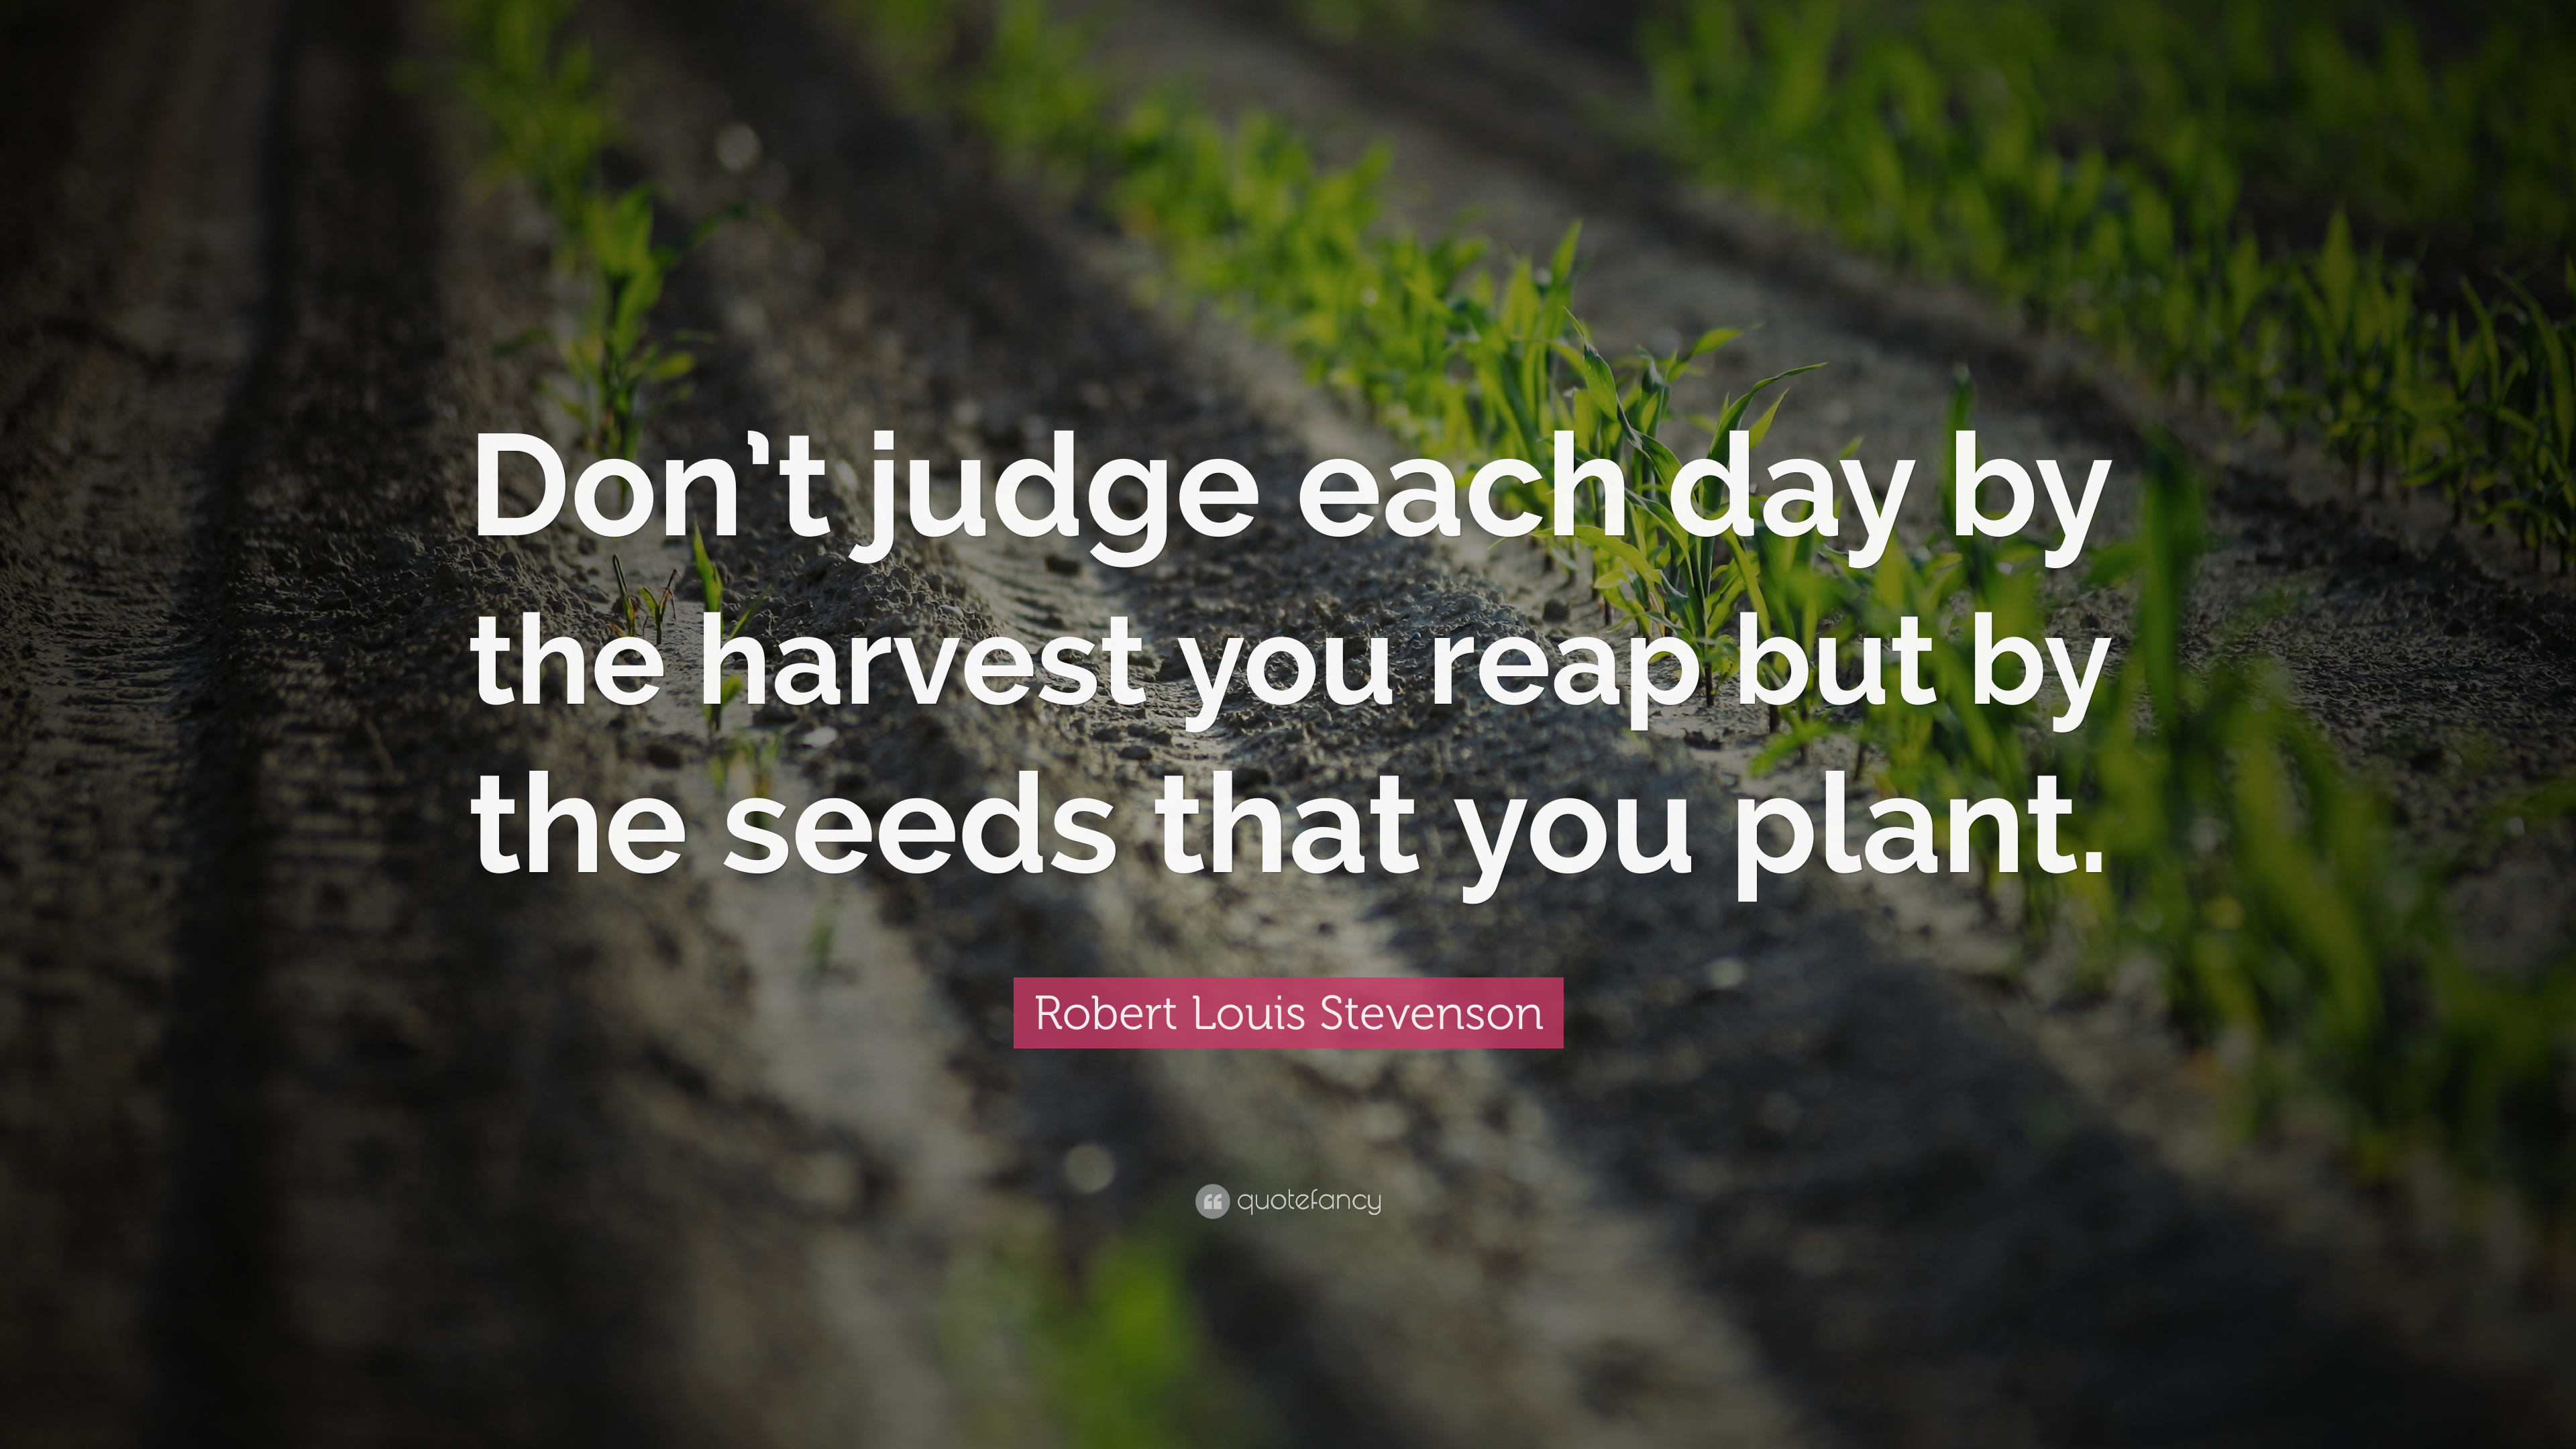 """Don't judge e - th e h a ri"""" ure ' b ut by the seeds' at you plant. ' x~_ ' ' ii) quotefioncg https://inspirational.ly"""